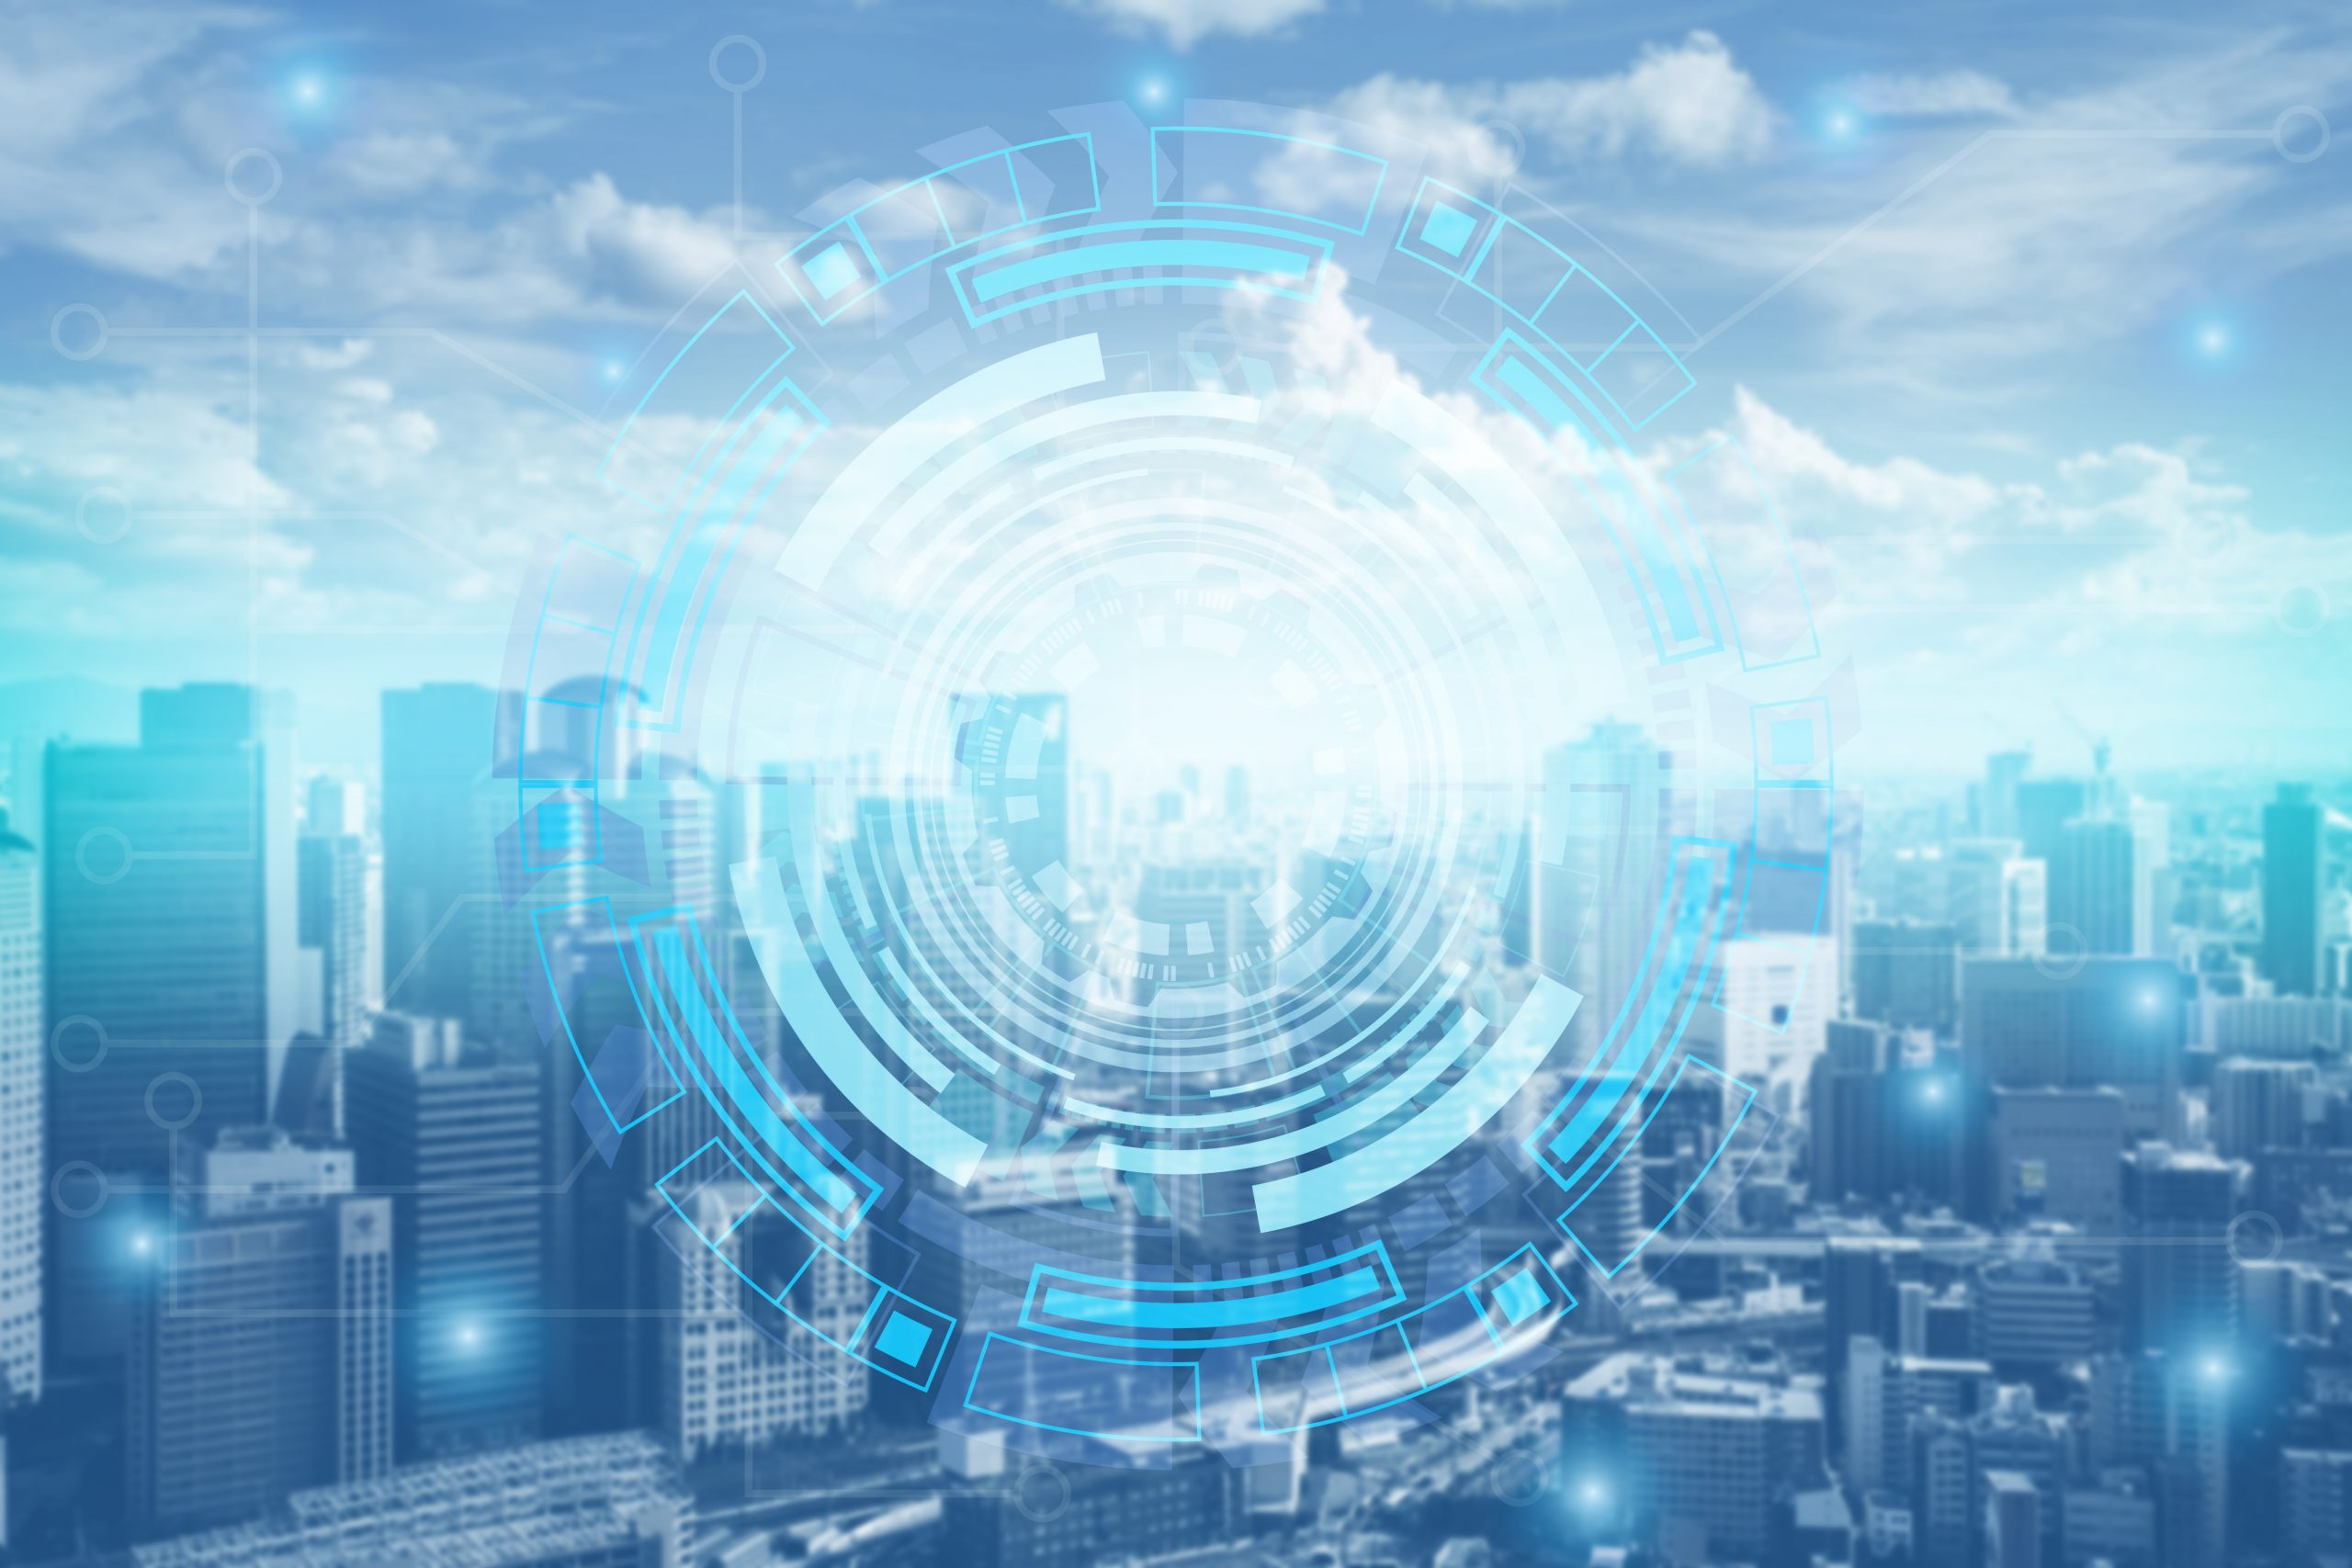 Digitalisation said to be good for real estate transactions amid pandemic